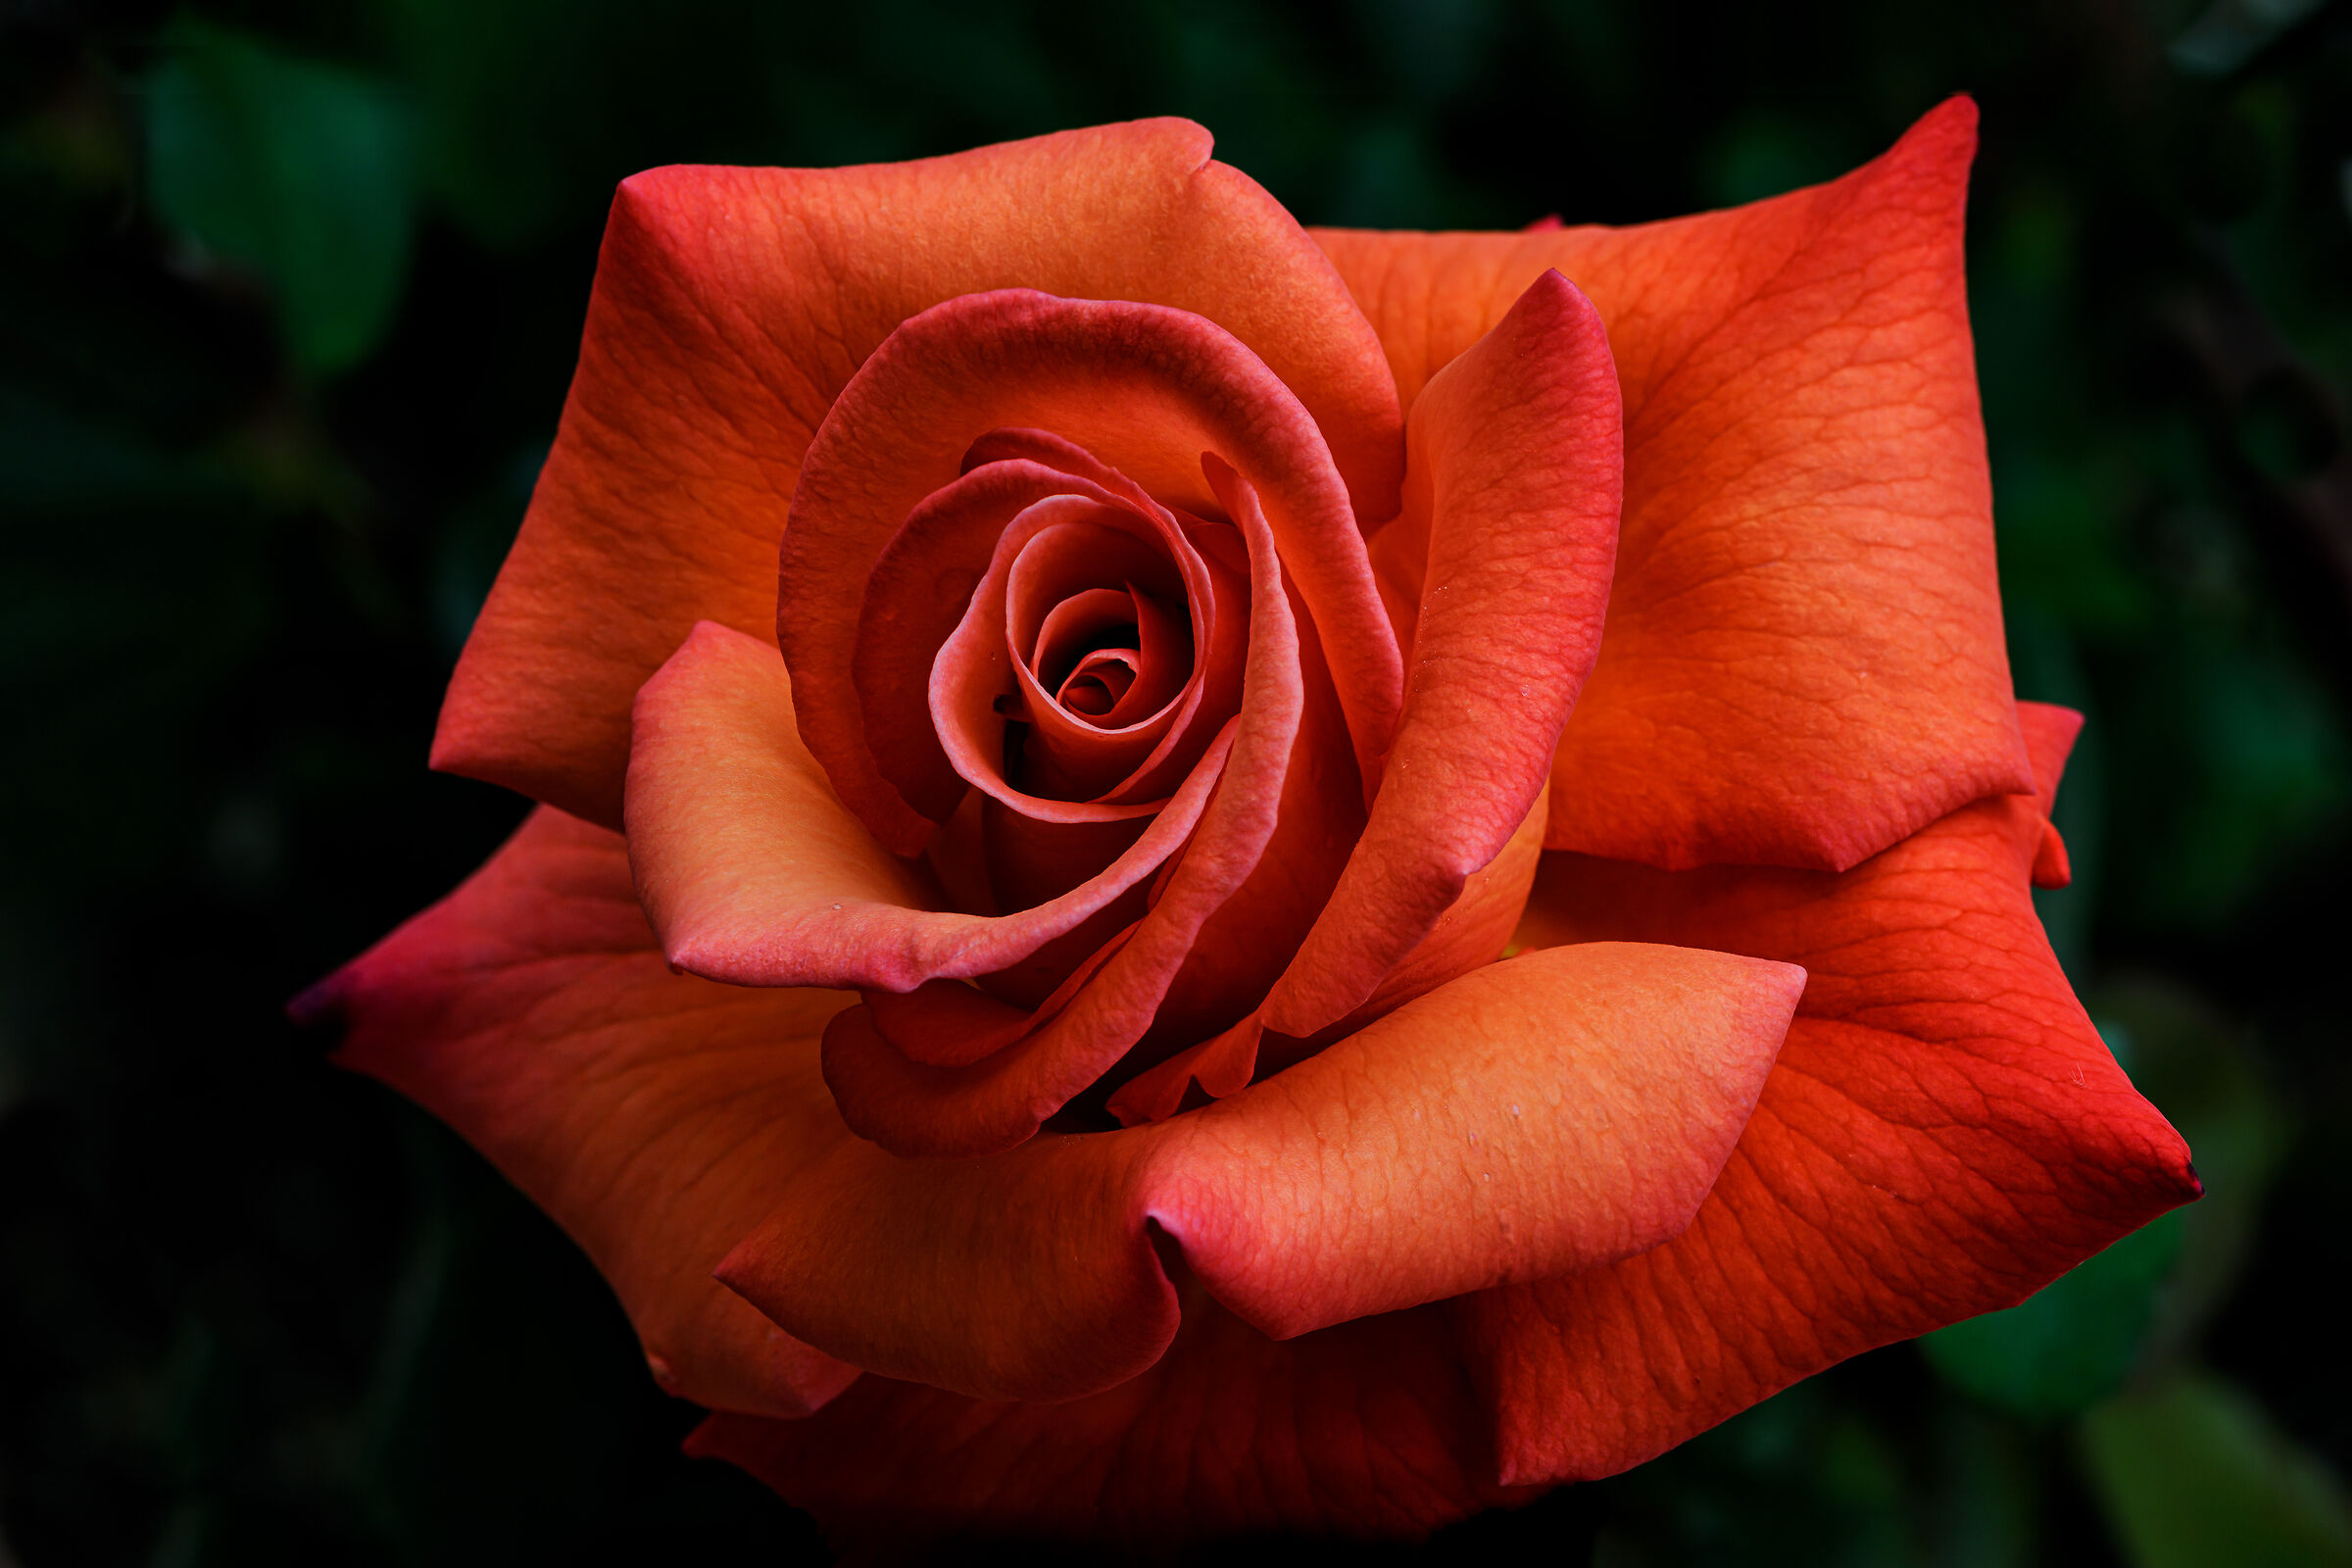 The first rose in my garden...